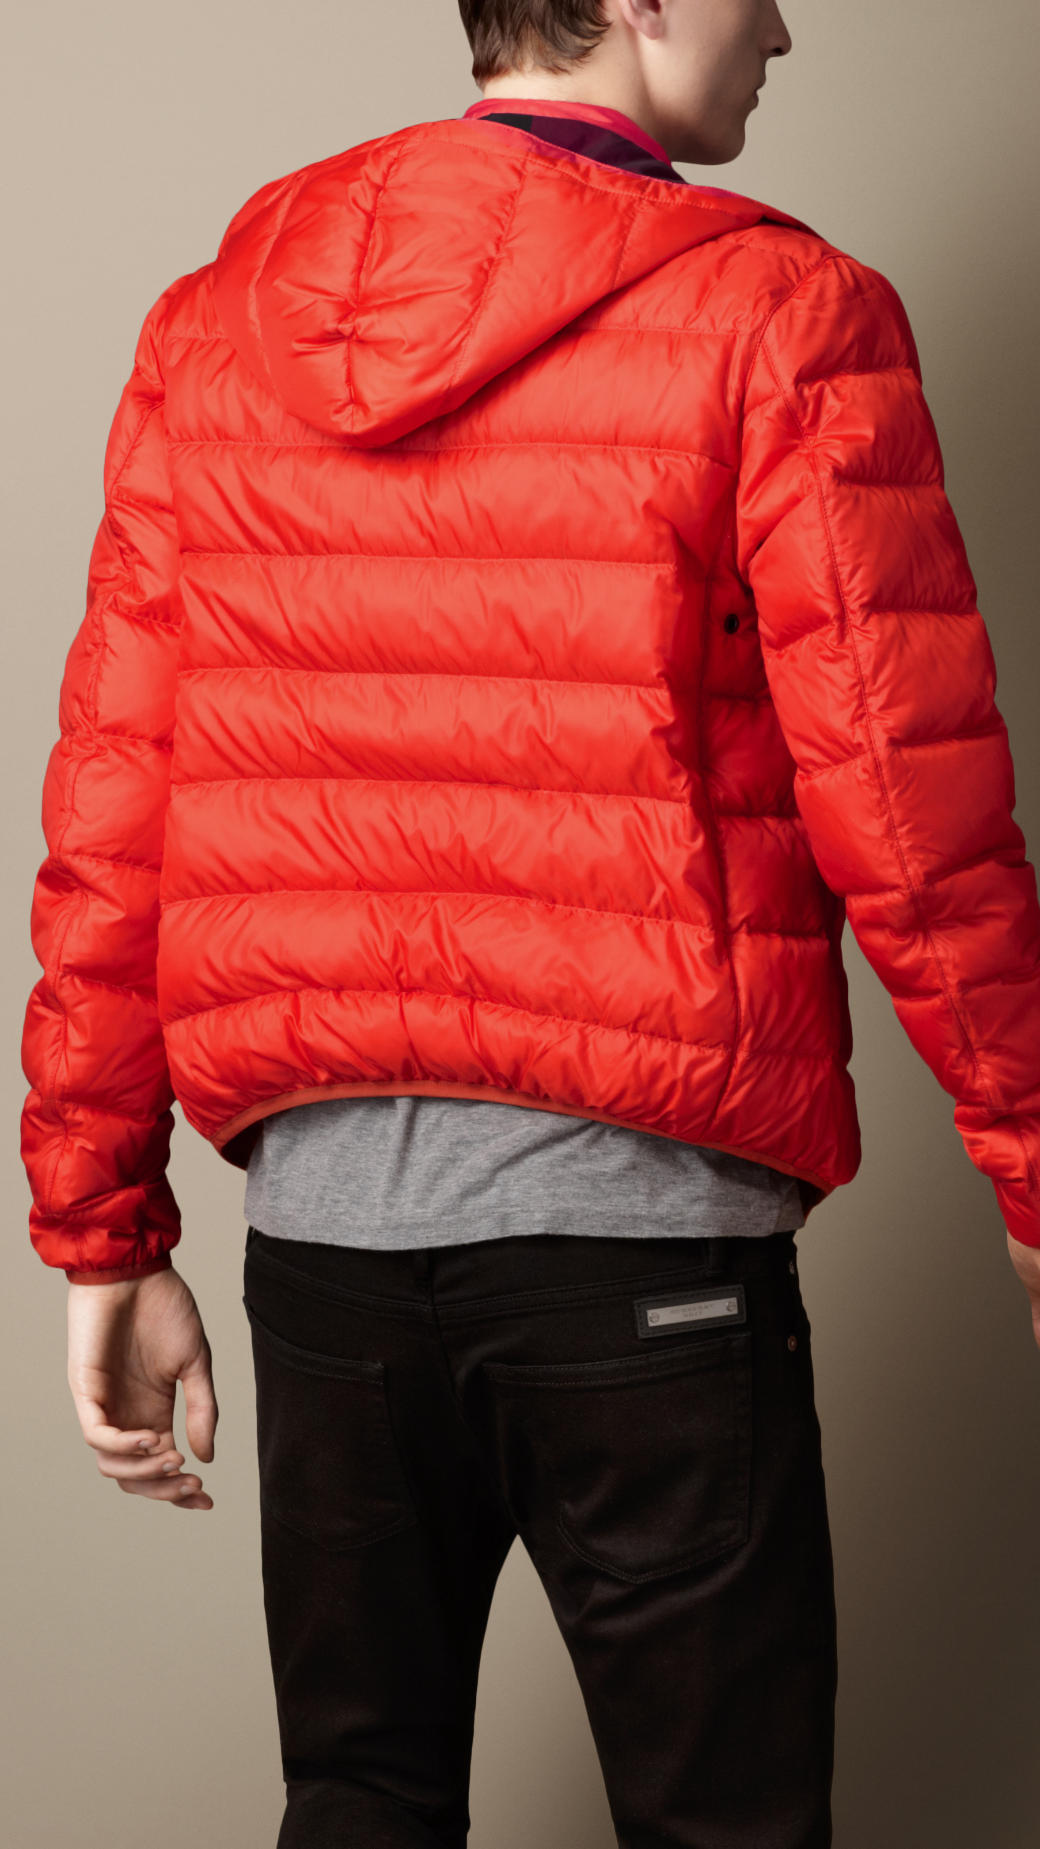 Burberry Downfilled Puffer Jacket In Orange For Men Lyst